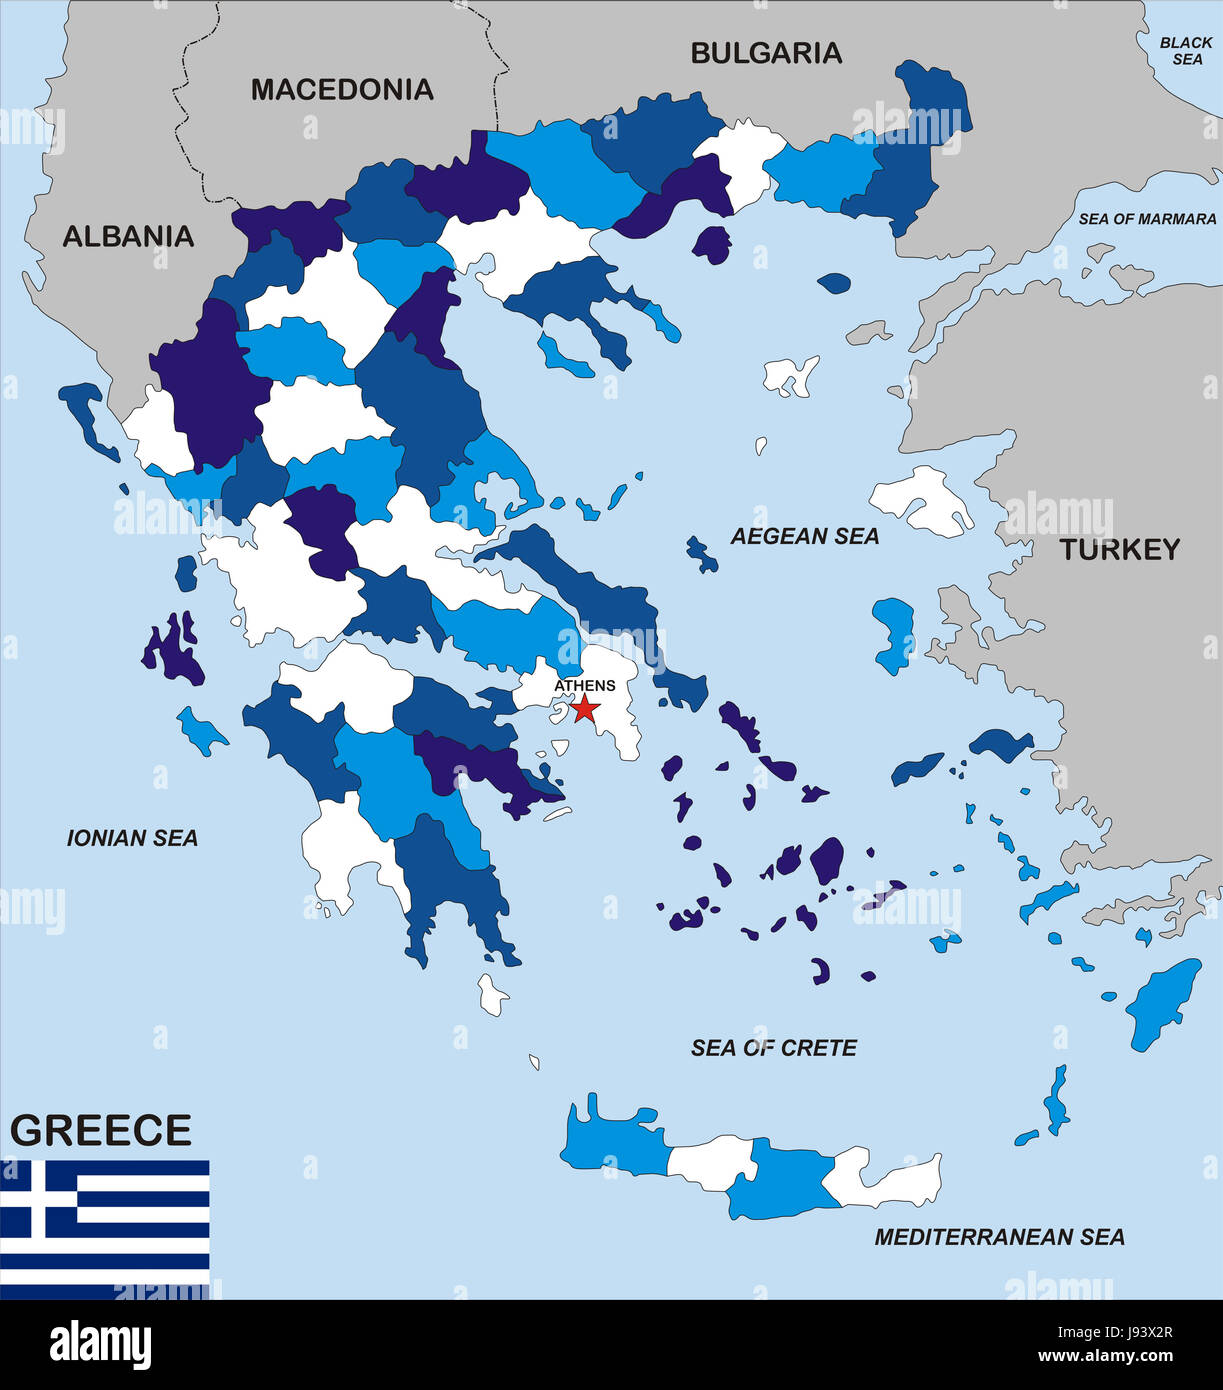 greece map atlas map of the world travel political greece